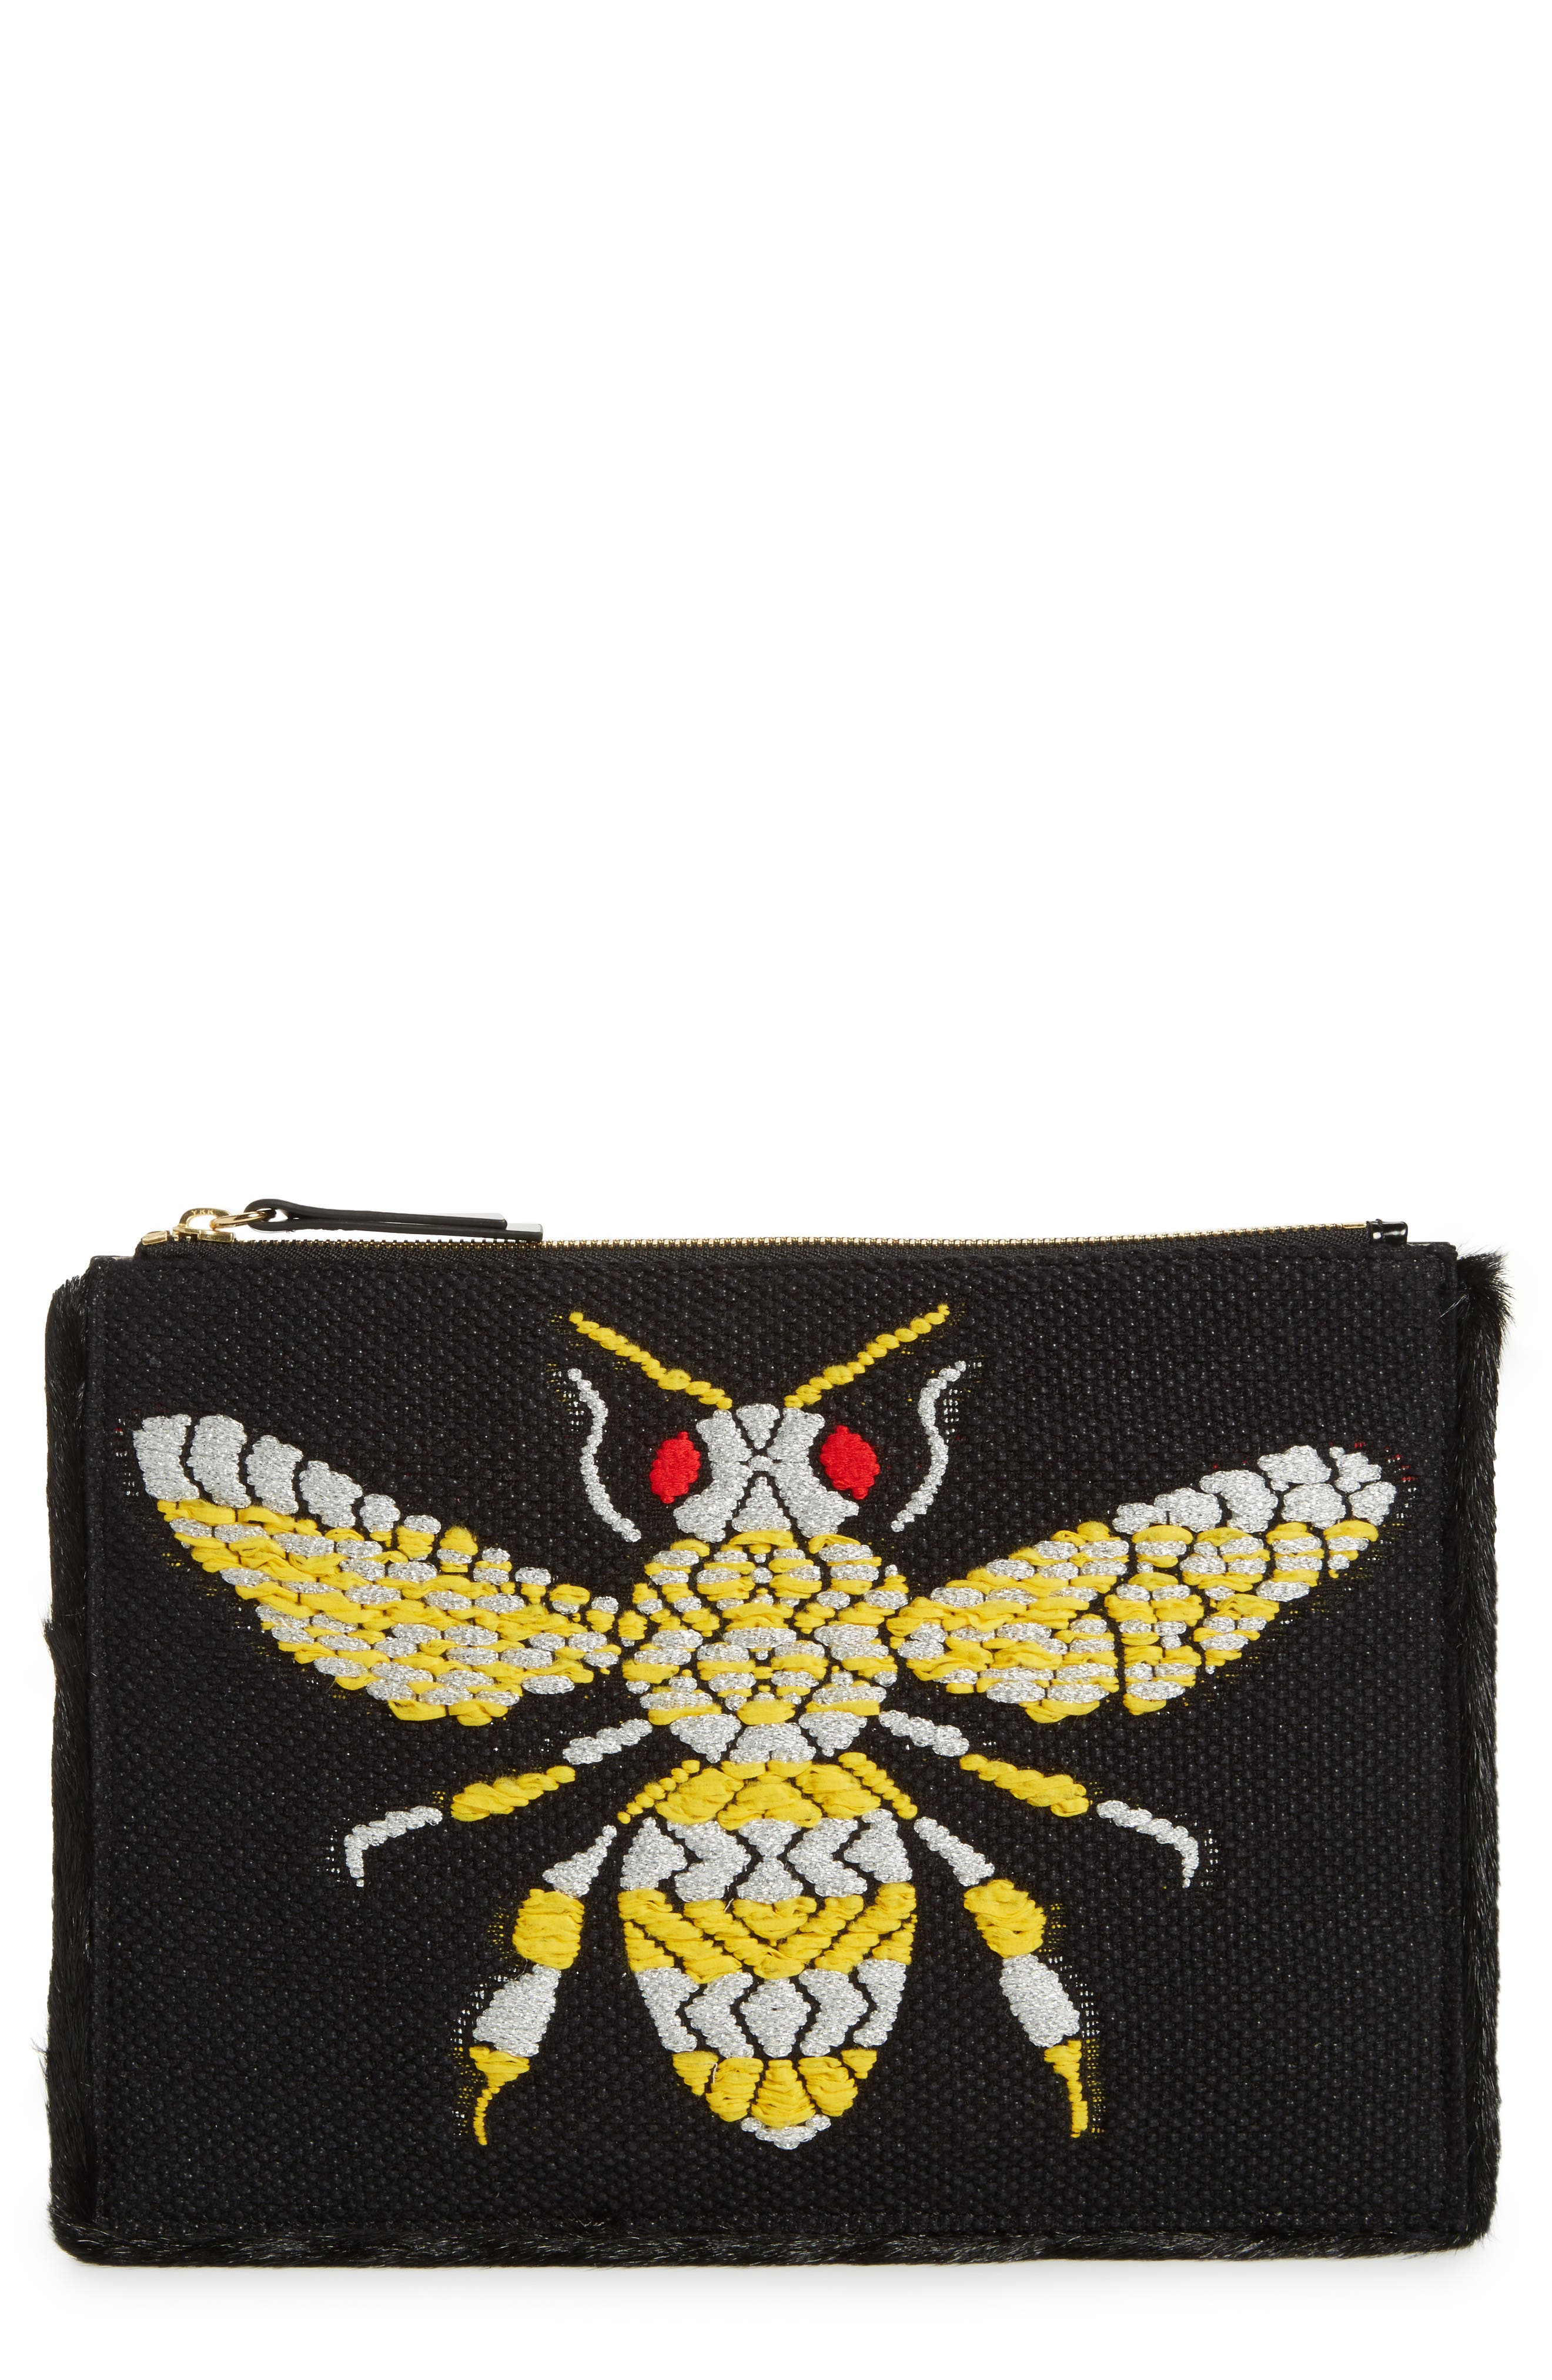 Frances Valentine Large Bee Leather Clutch